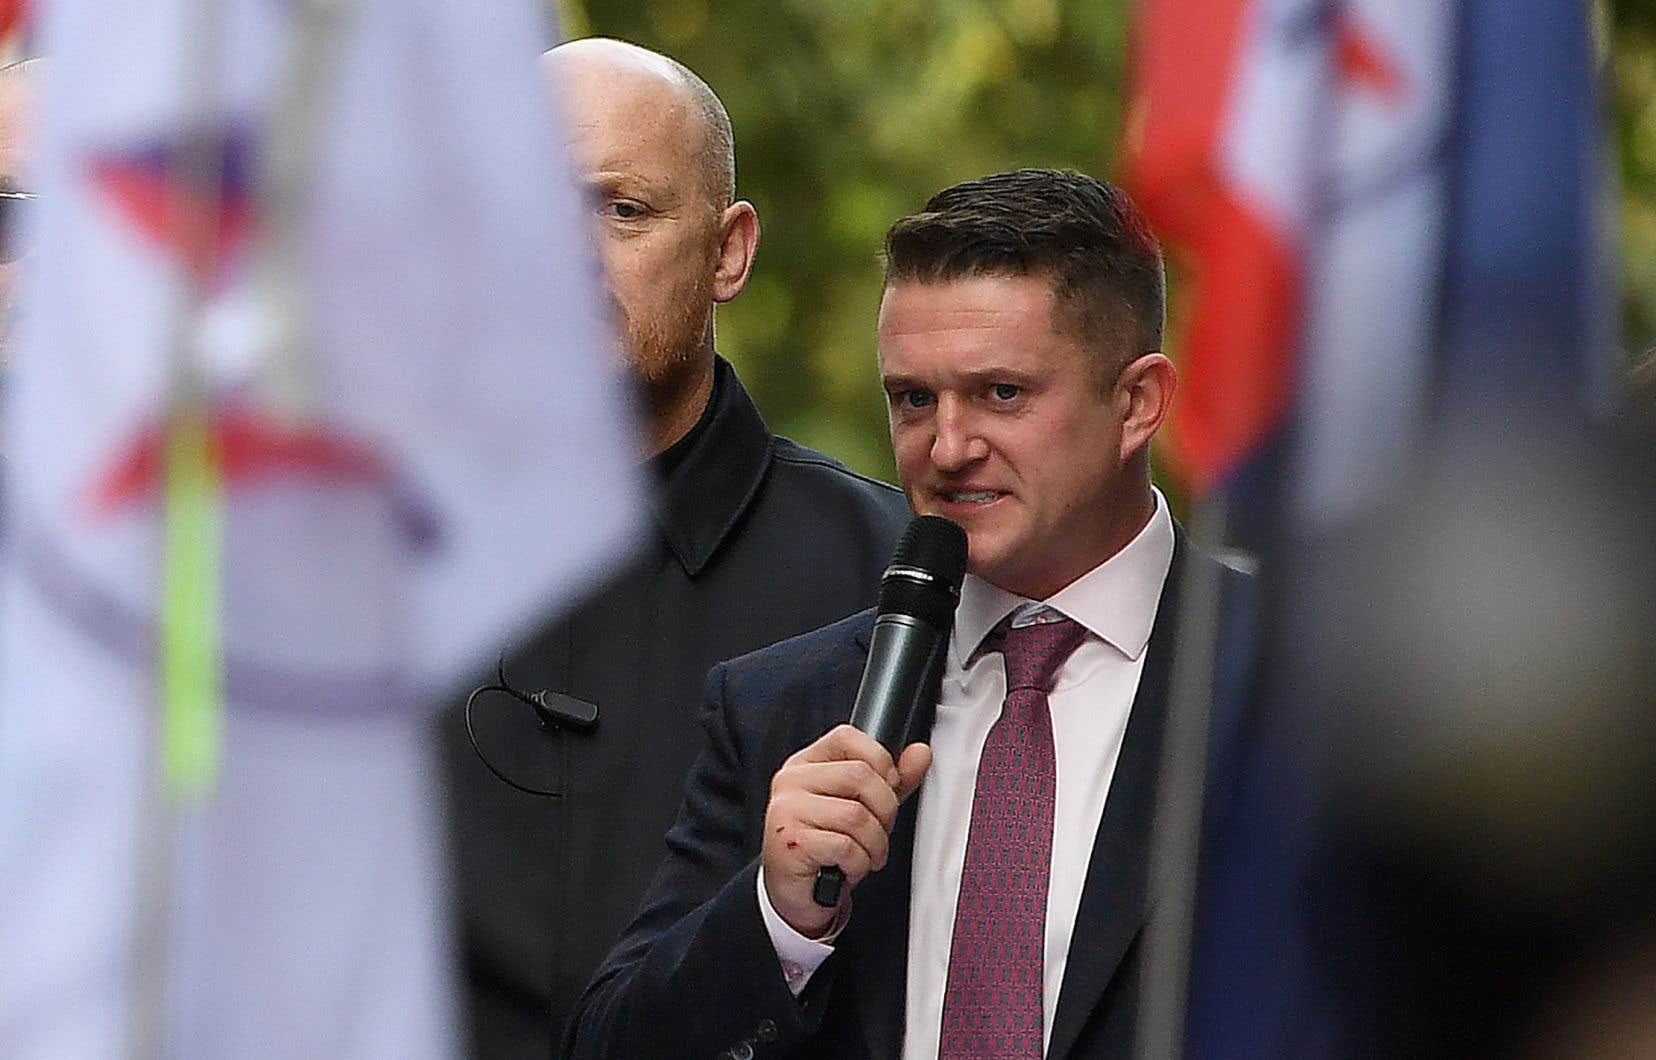 Stephen Yaxley-Lennon, alias Tommy Robinson, est le fondateur de l'«English Defence League», un groupe marginal affirmant lutter contre la menace islamiste.